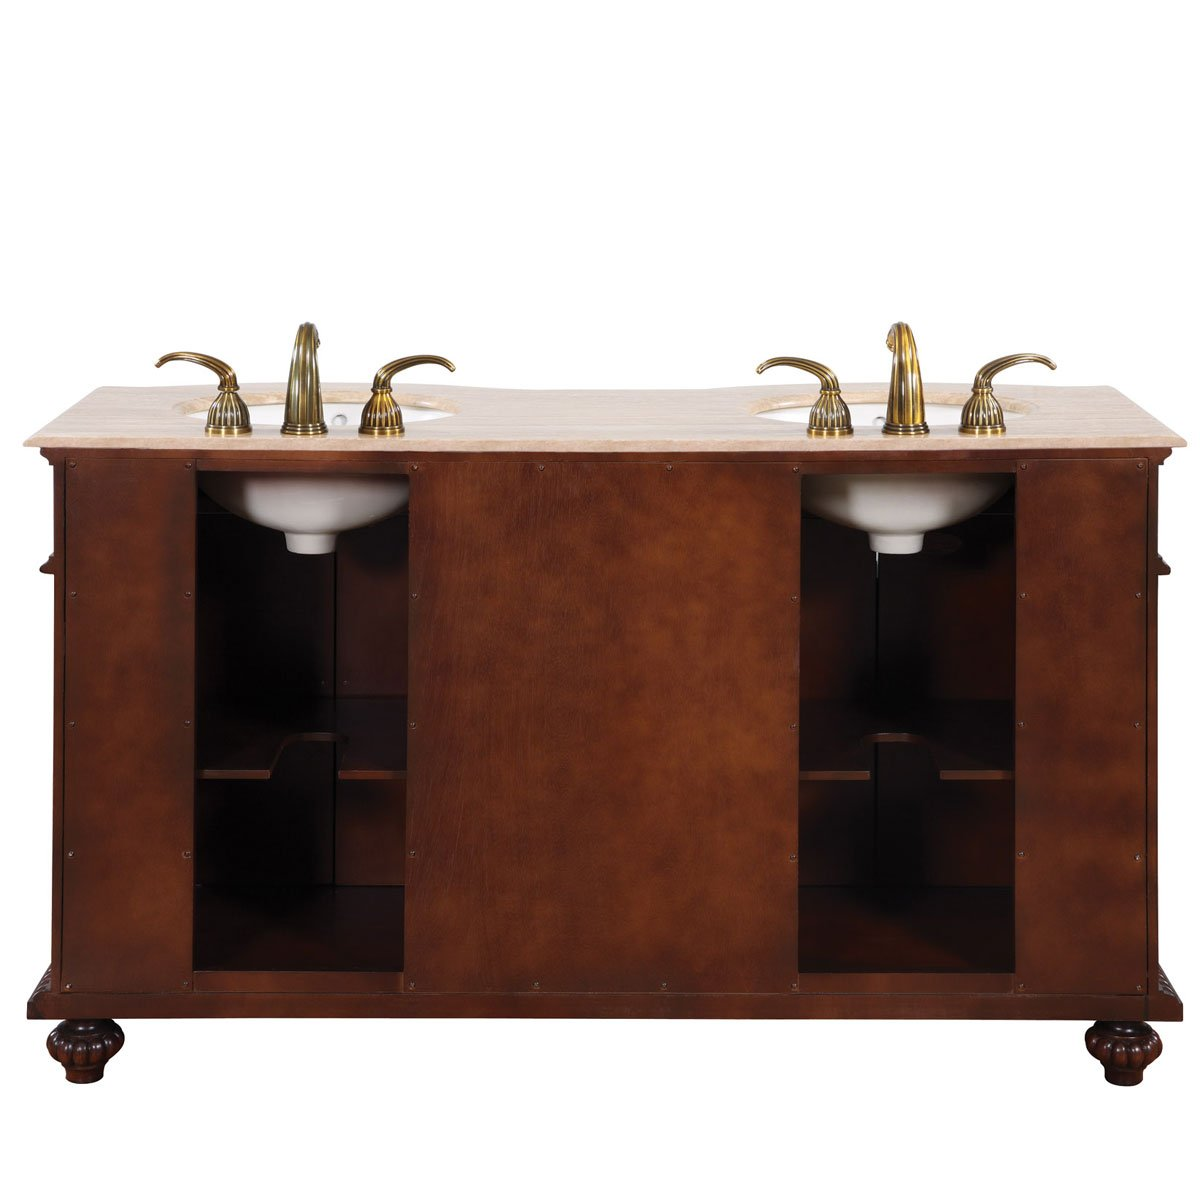 Silkroad Exclusive Countertop Travertine Dual Sink Bathroom Vanity with Double Cabinet, 60-Inch by Silkroad Exclusive (Image #3)